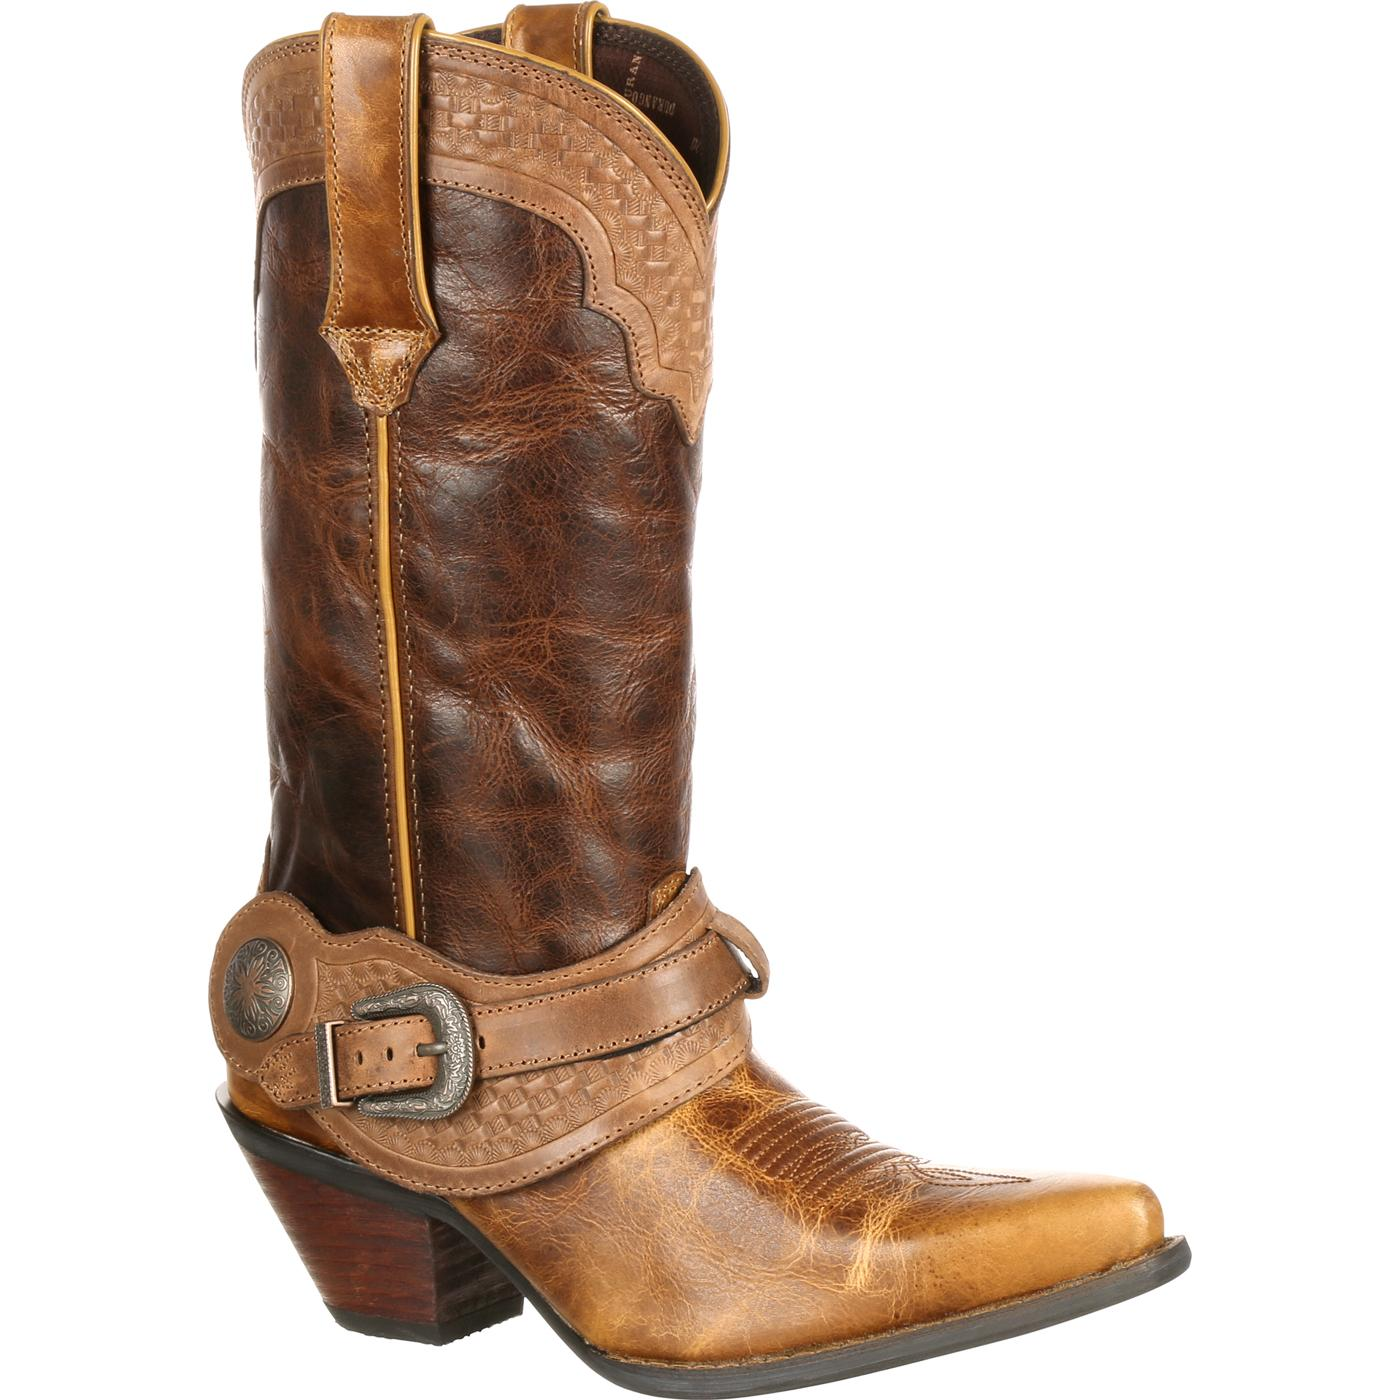 Removing cowboy boots to show soles 2